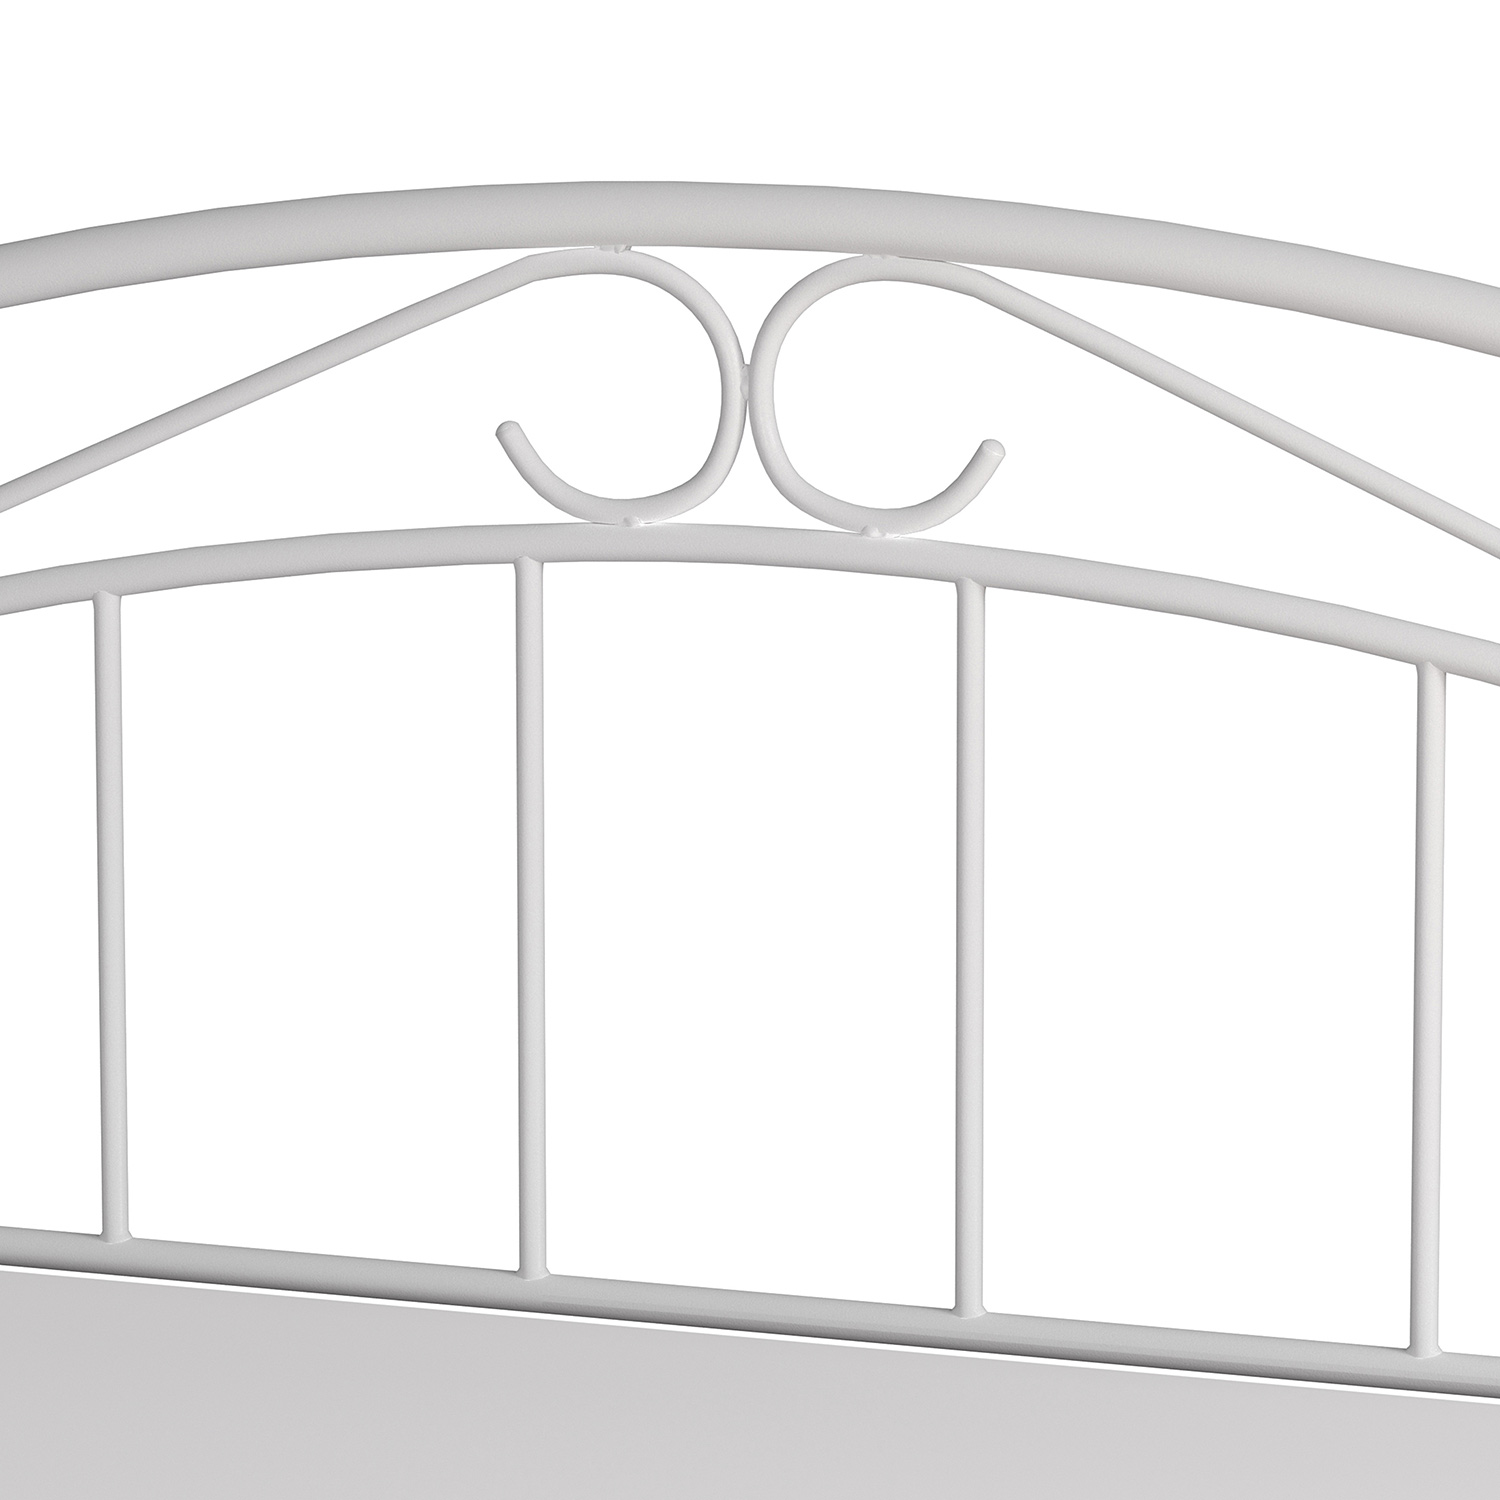 Hillsdale Jolie Metal Headboard with Arched Scroll Design - White